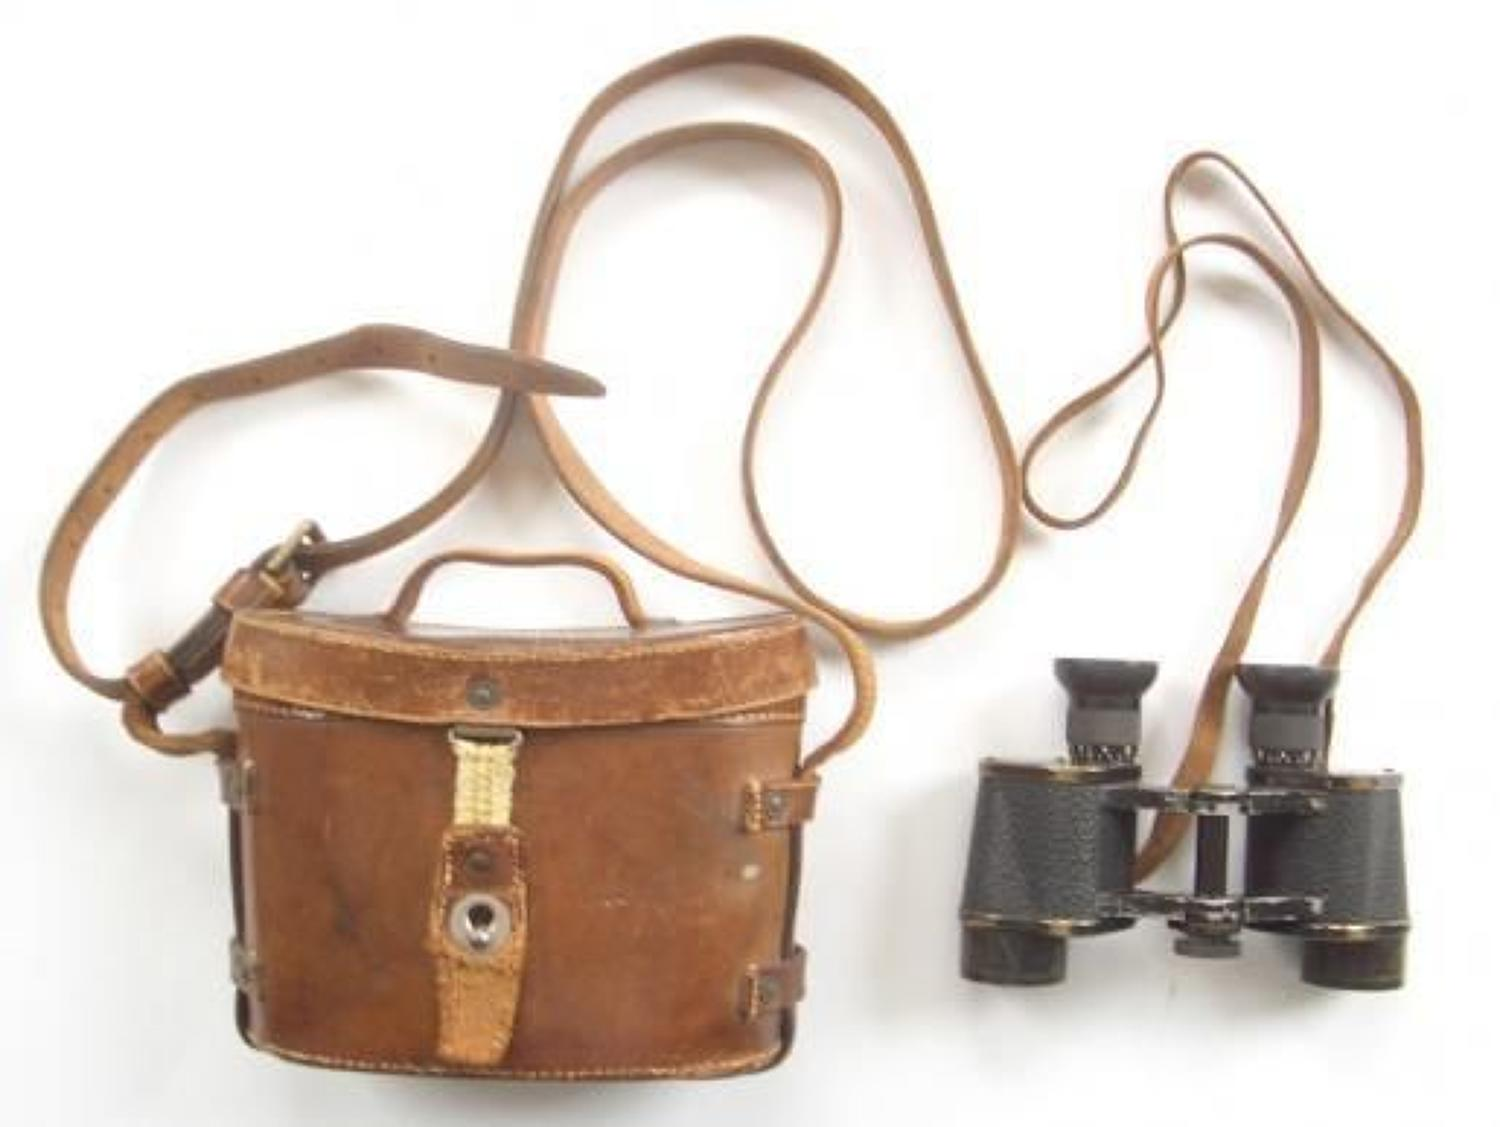 WW1 1914 British Army Issue Binoculars.